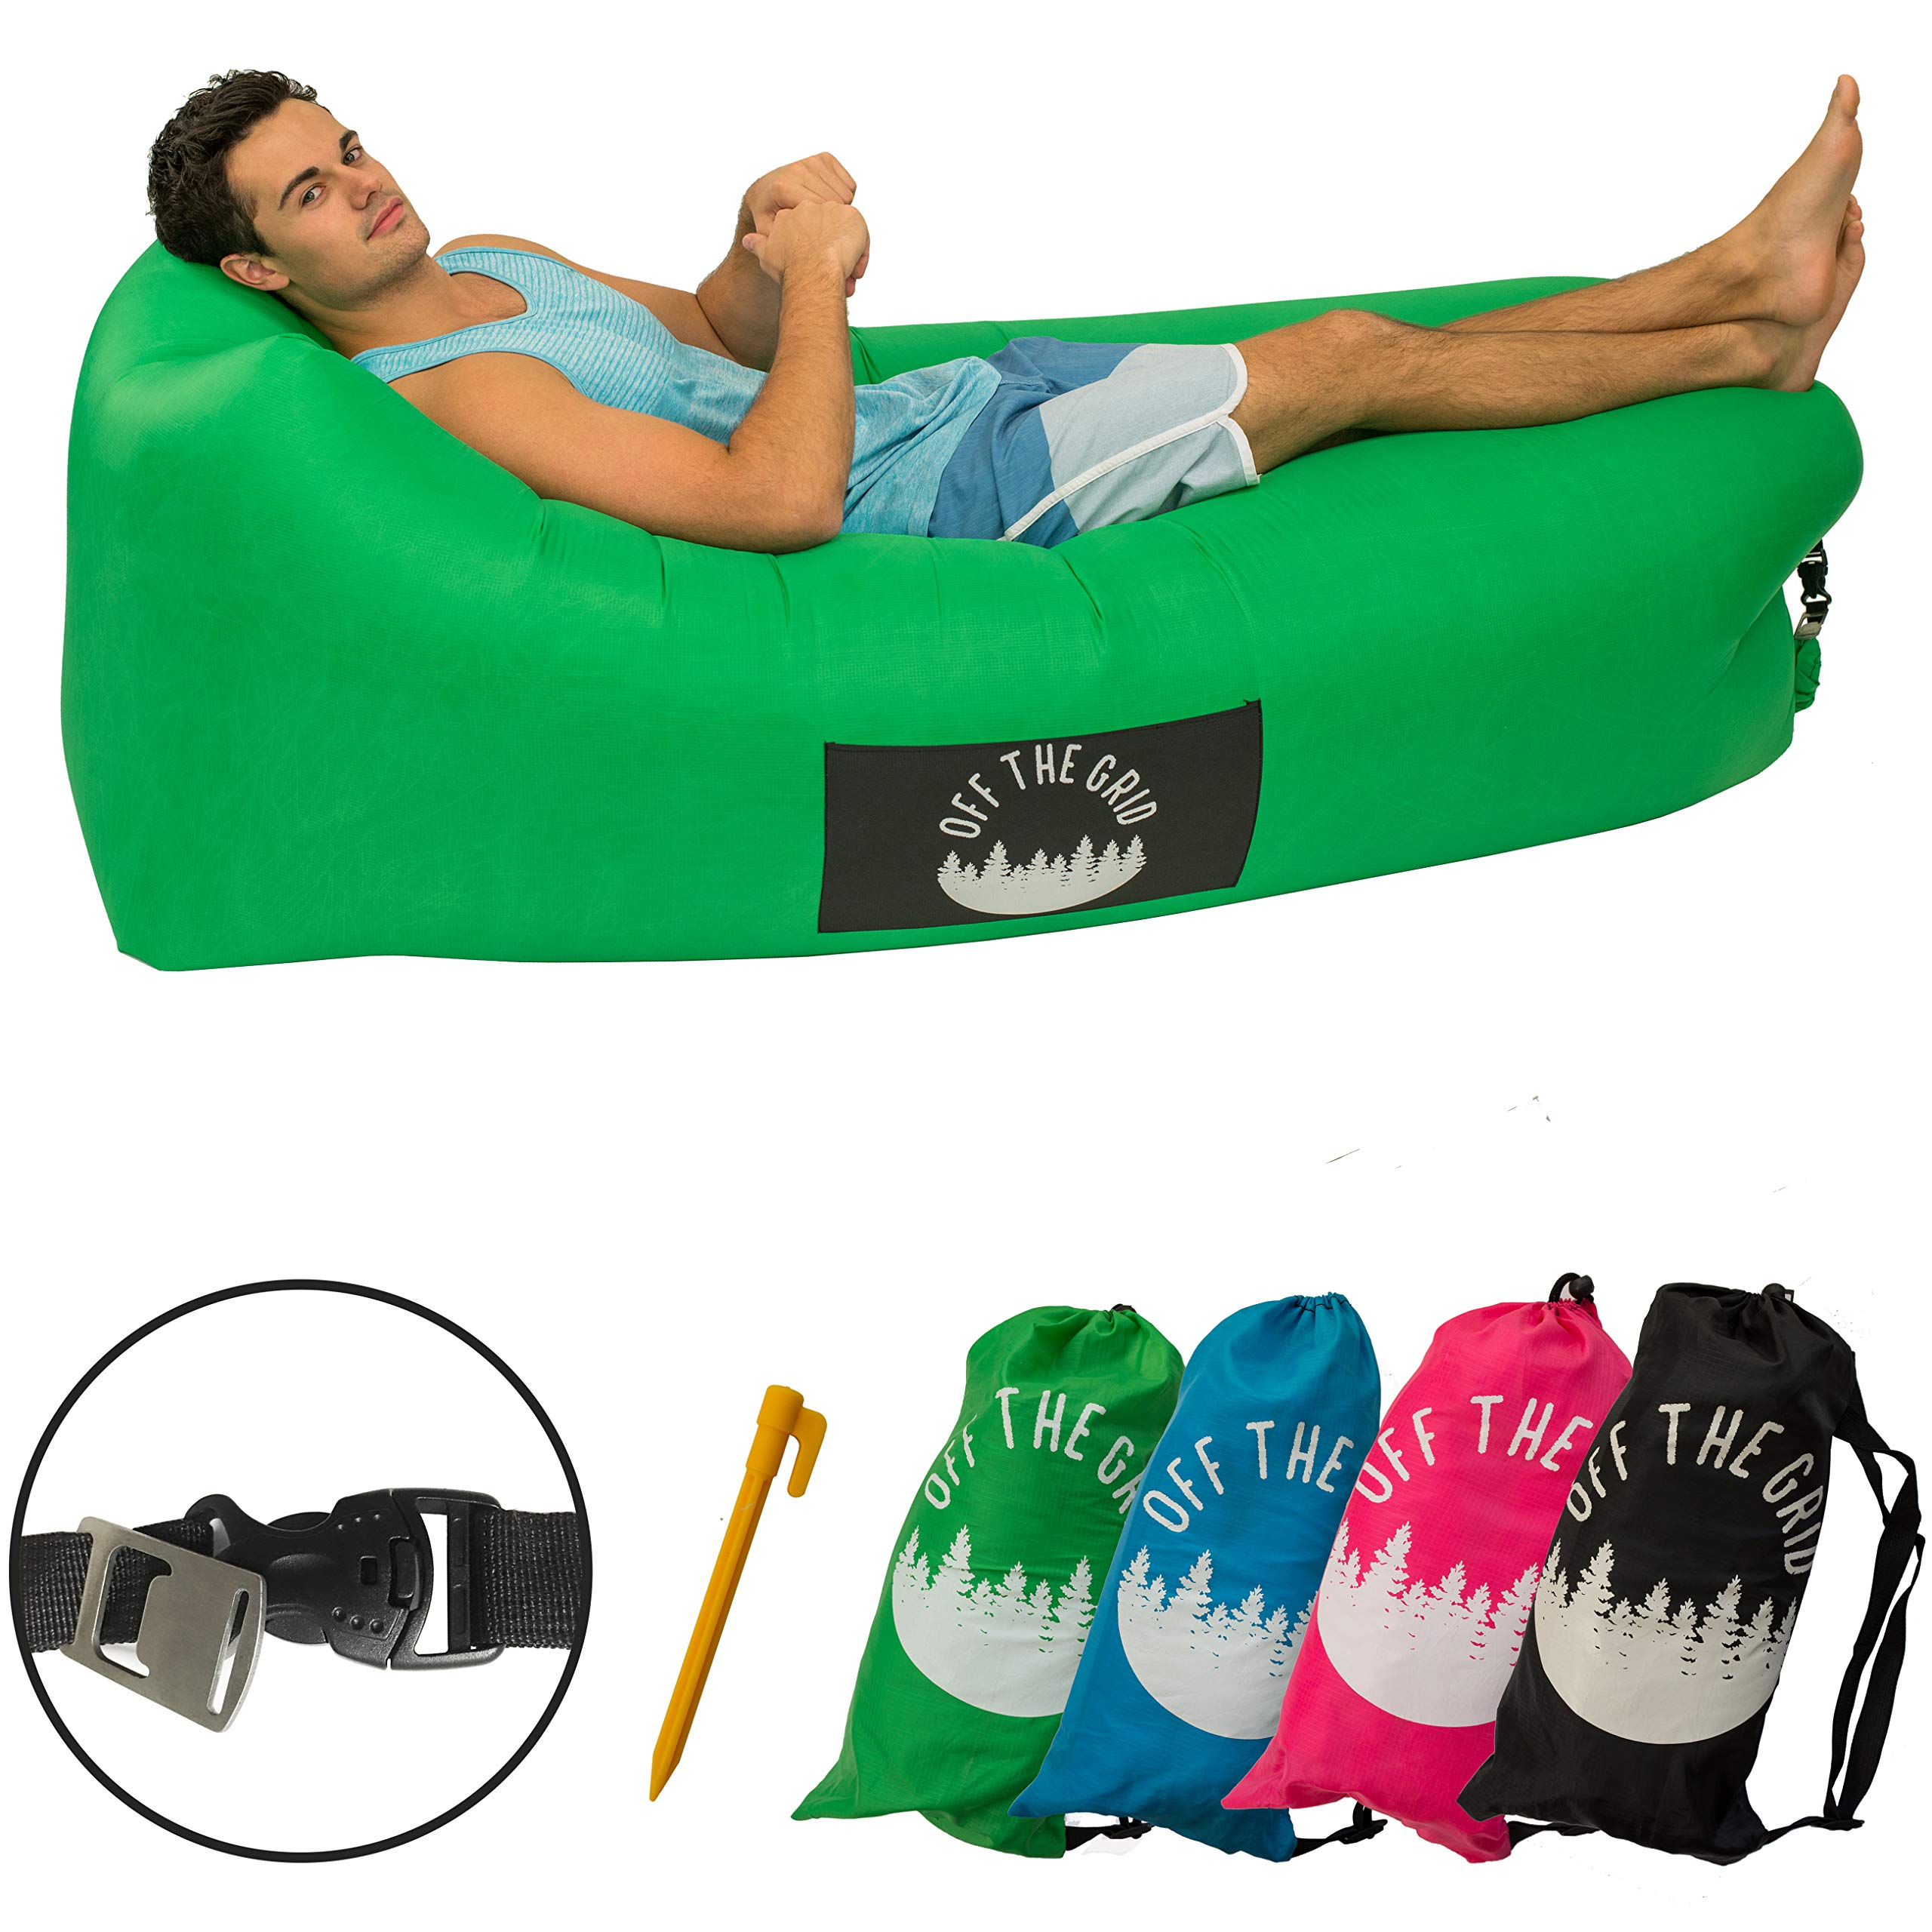 Off the Grid Inflatable Lounger - Air Sofa Wind Chair Hammock - Floating/Portable Bed for Beach, Pool, Camping, Outdoors Lazy Bag Cloud Couch (Green) by Off the Grid